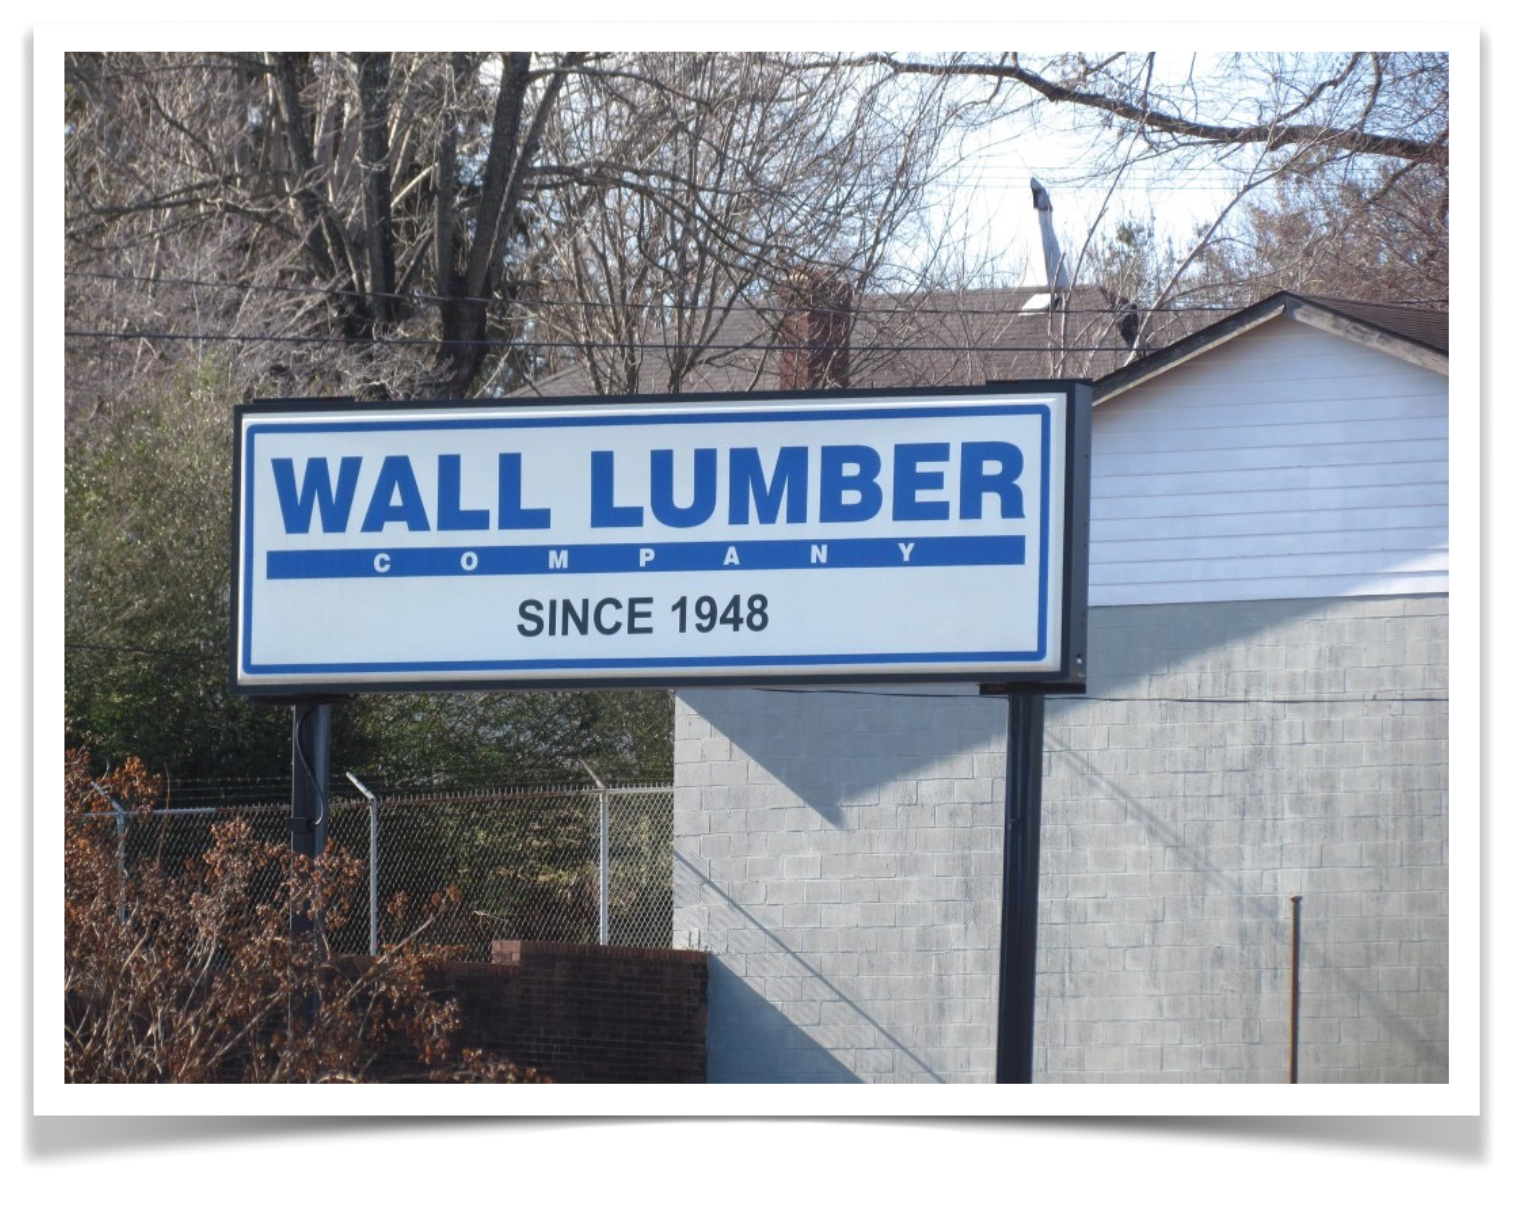 About Wall lumber Company